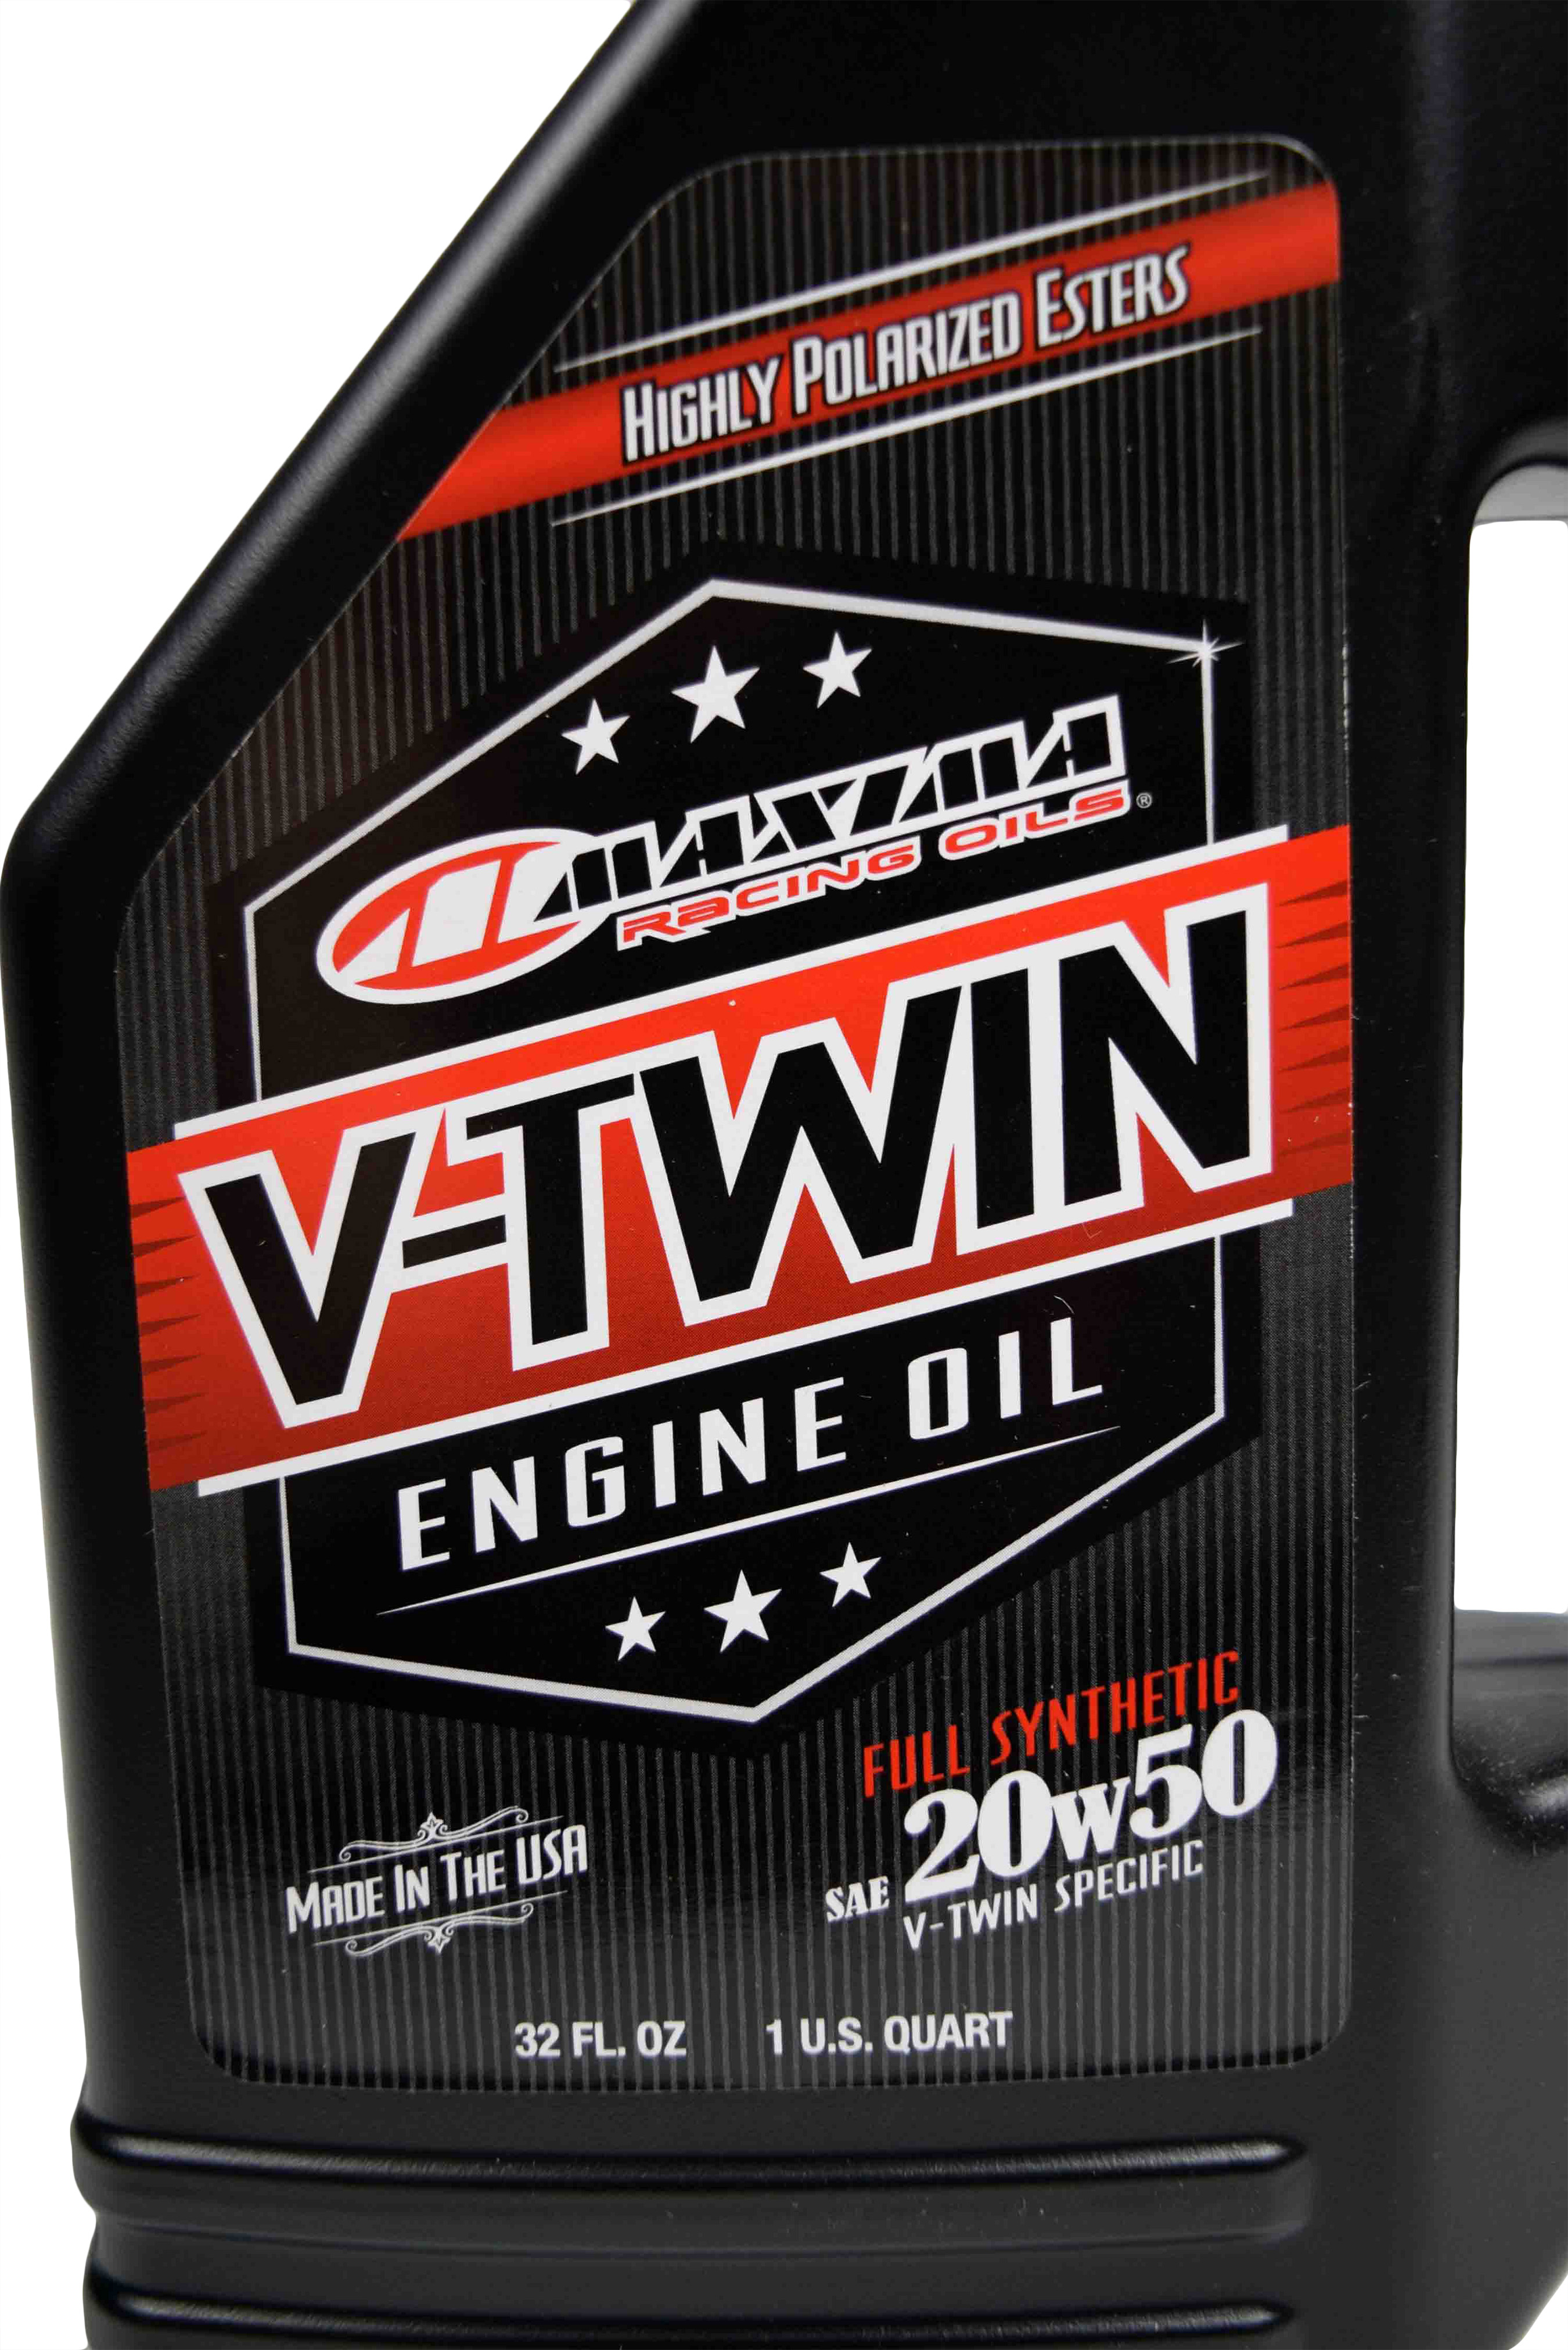 Maxima-Racing-Oils-30-11901-20w50-V-Twin-Full-Synthetic-Engine-Oil-32-fl.-oz.-image-4